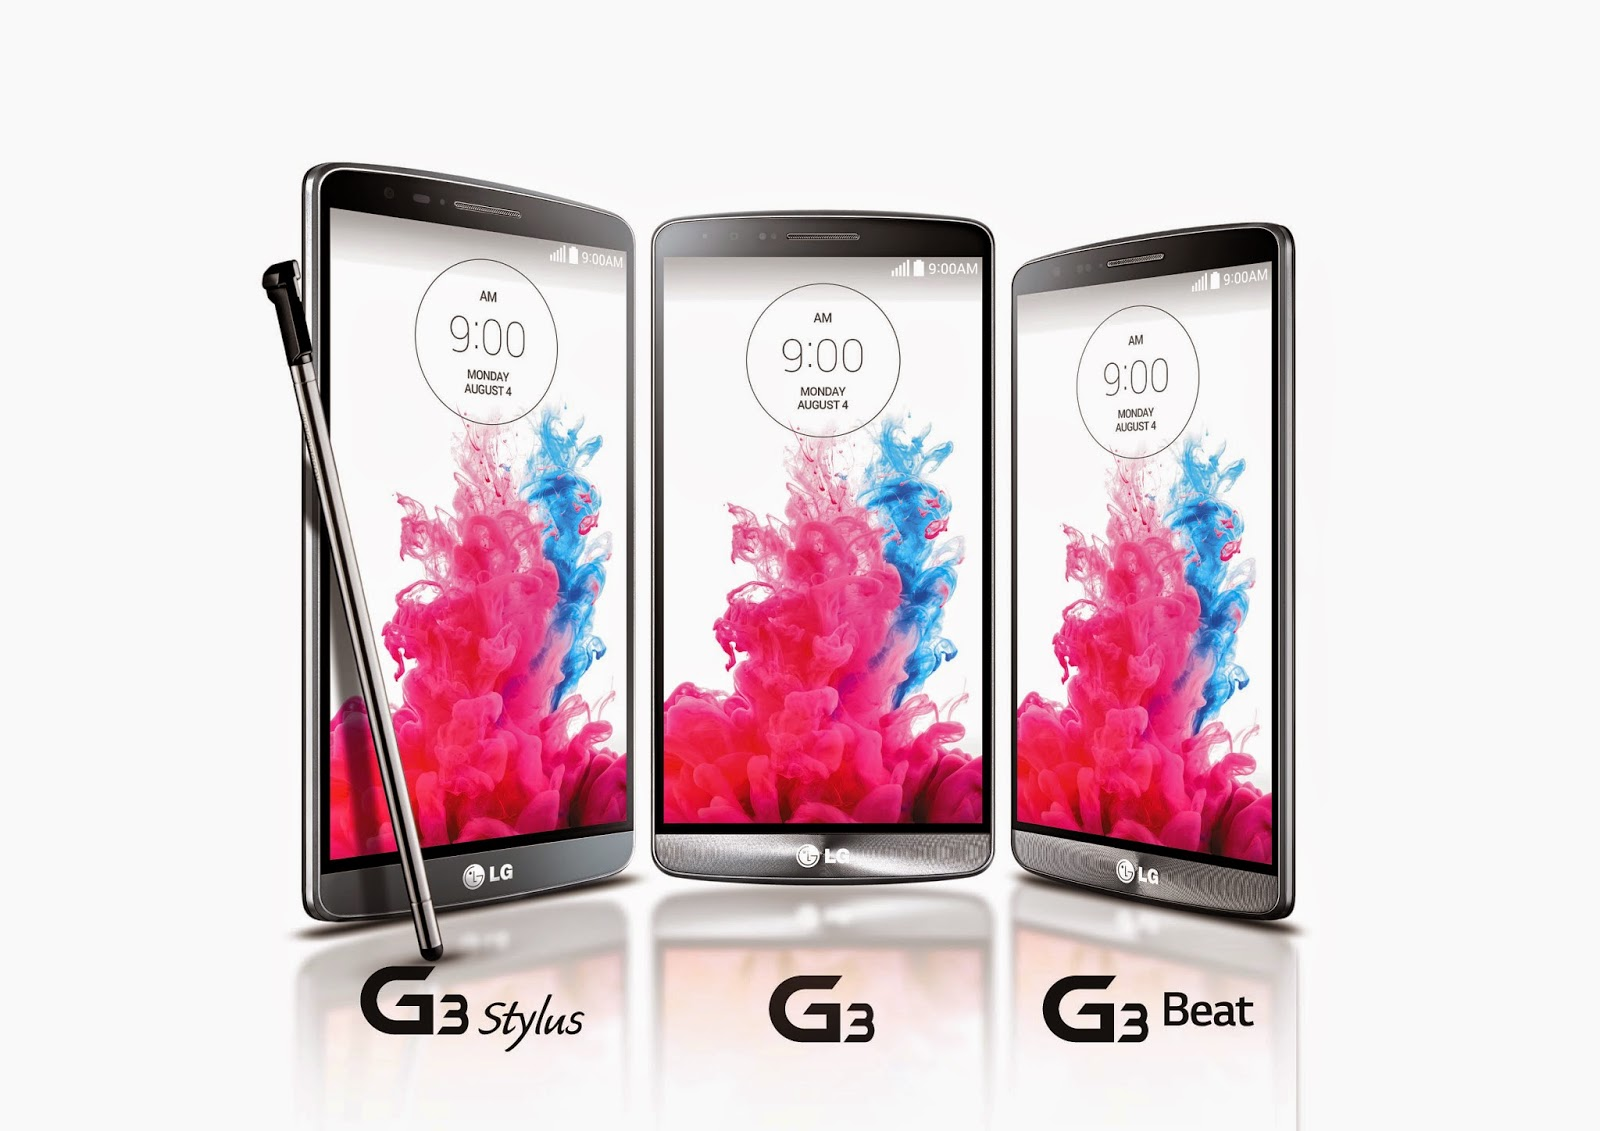 Completing The LG G3 Series LG G3 Stylus Amp G3 Beat With G